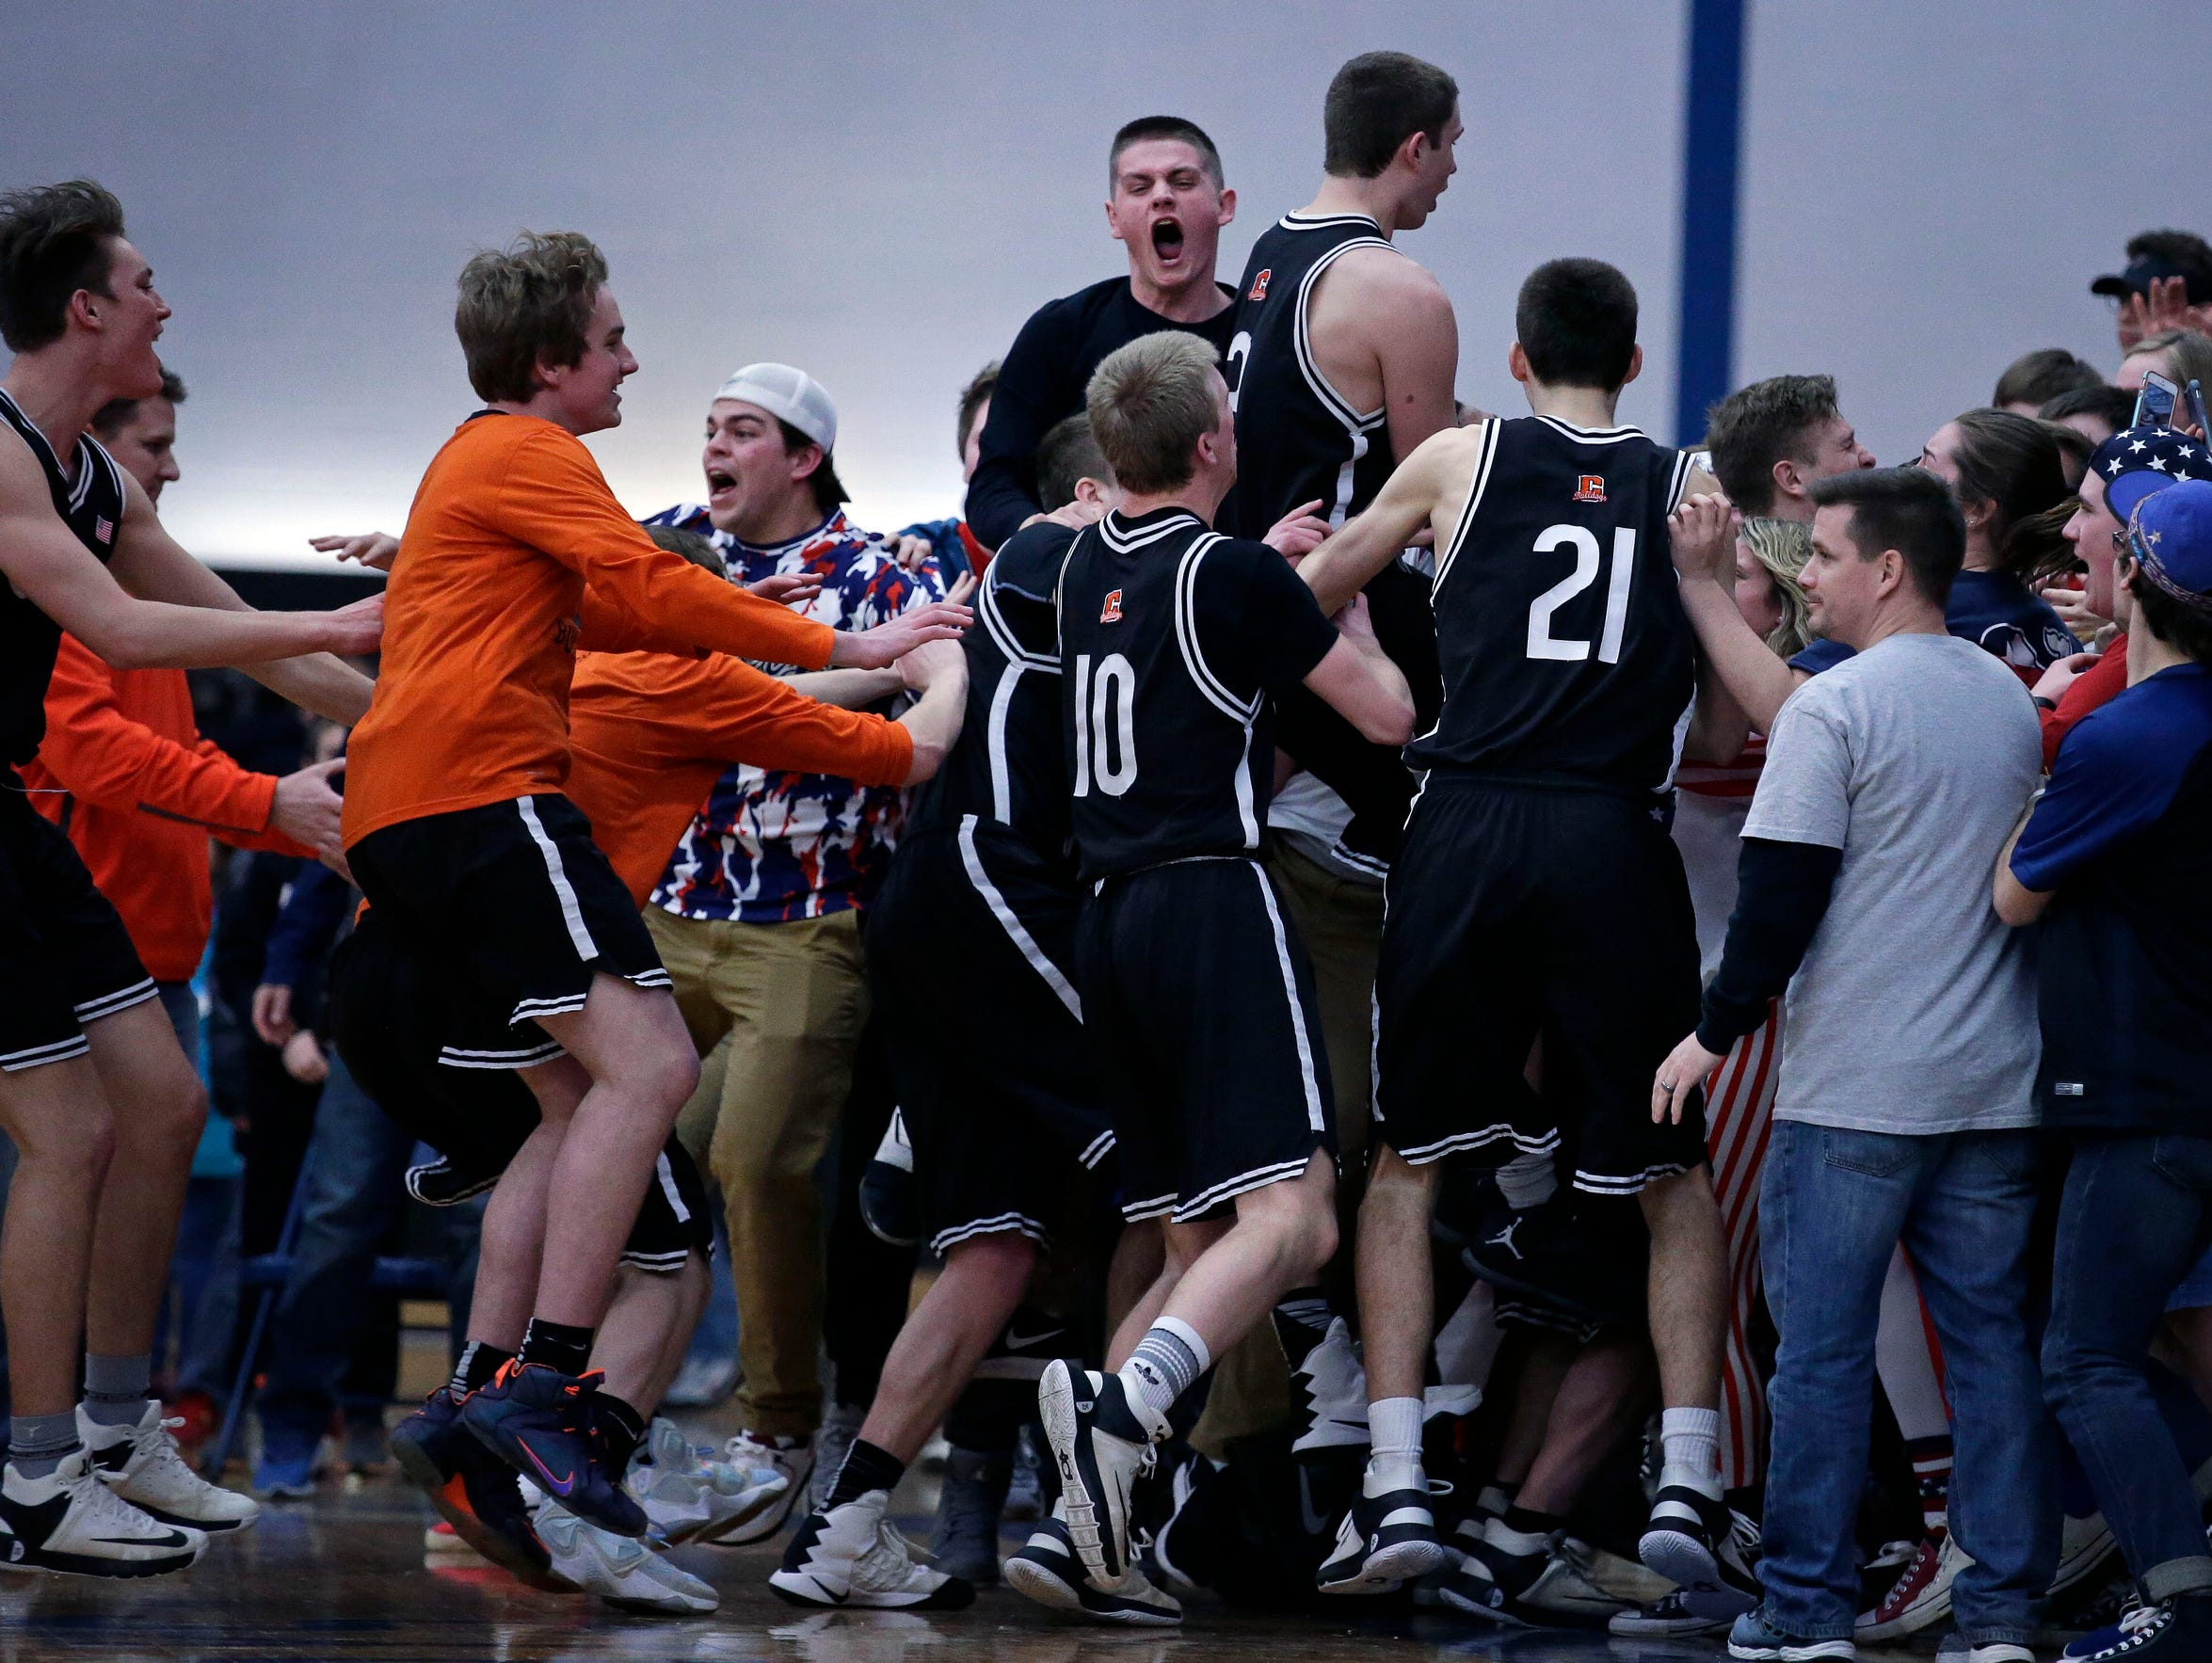 The Cedarburg Bulldogs celebrate with their fans after